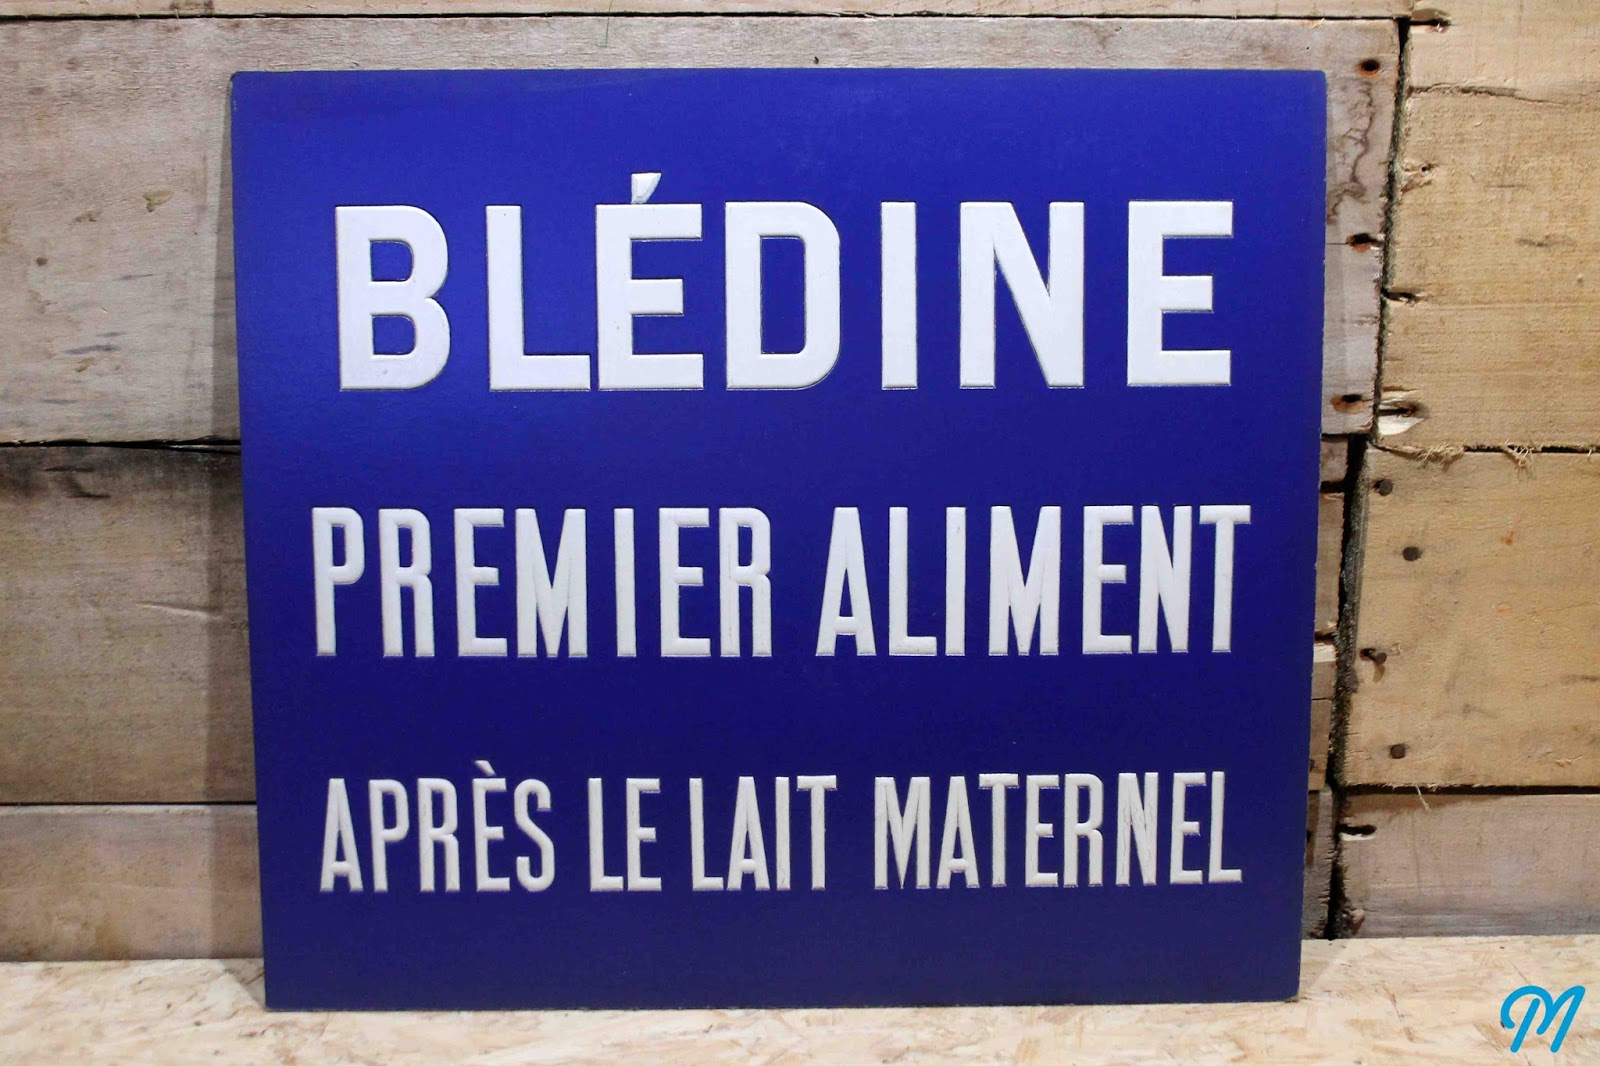 totem agfa affiches publicitaires salle de bain miniature panneaux accident plaques michelin. Black Bedroom Furniture Sets. Home Design Ideas